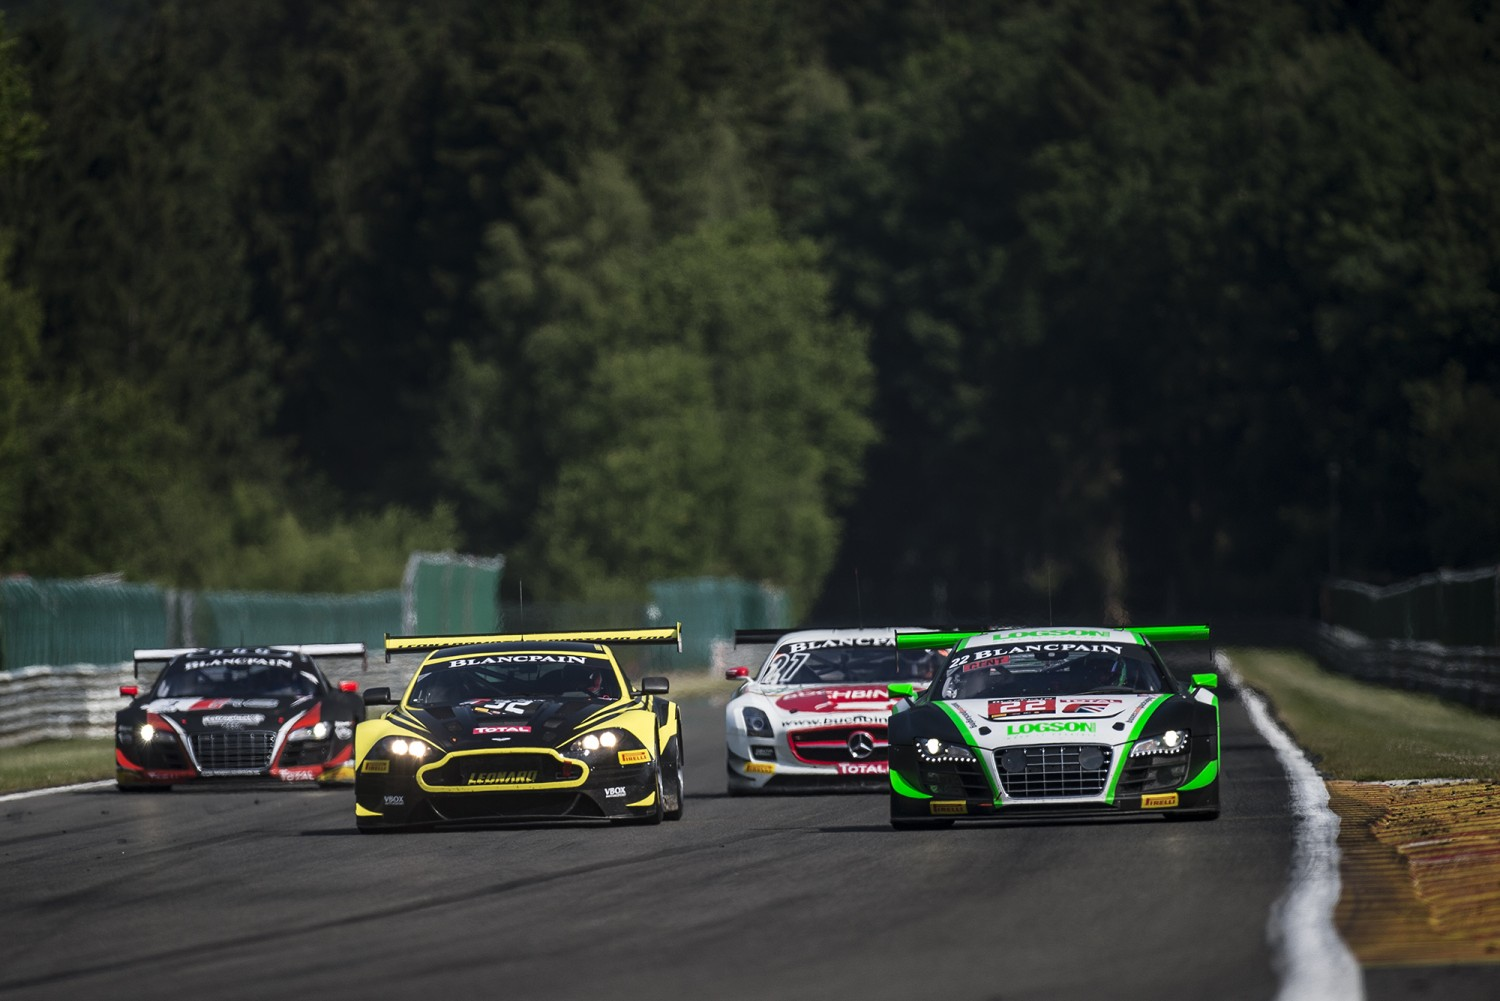 Official test day of Total 24 Hours of Spa sees plenty of action